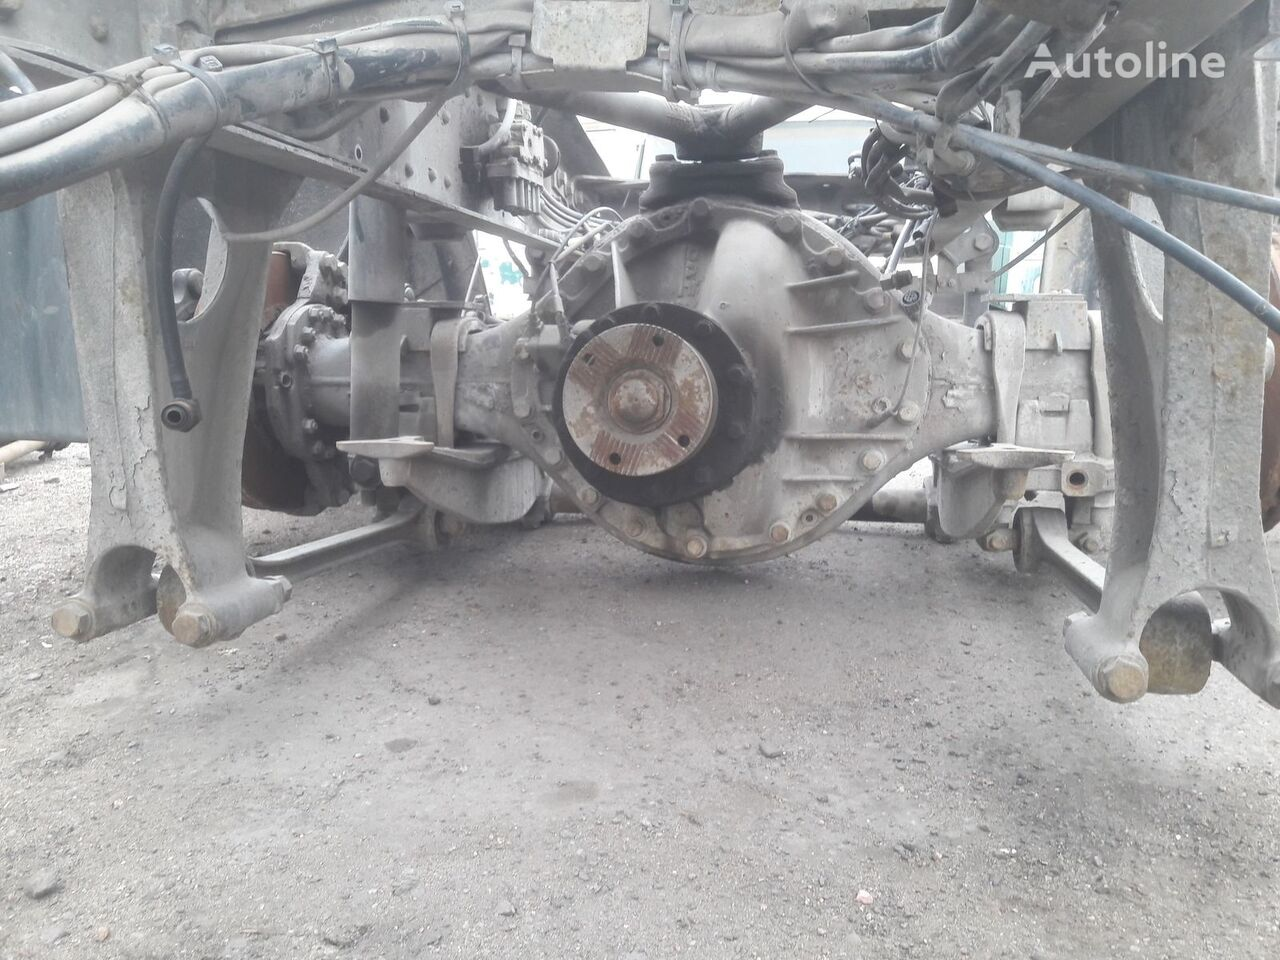 DAF drive axle for DAF XF95, XF105 tractor unit